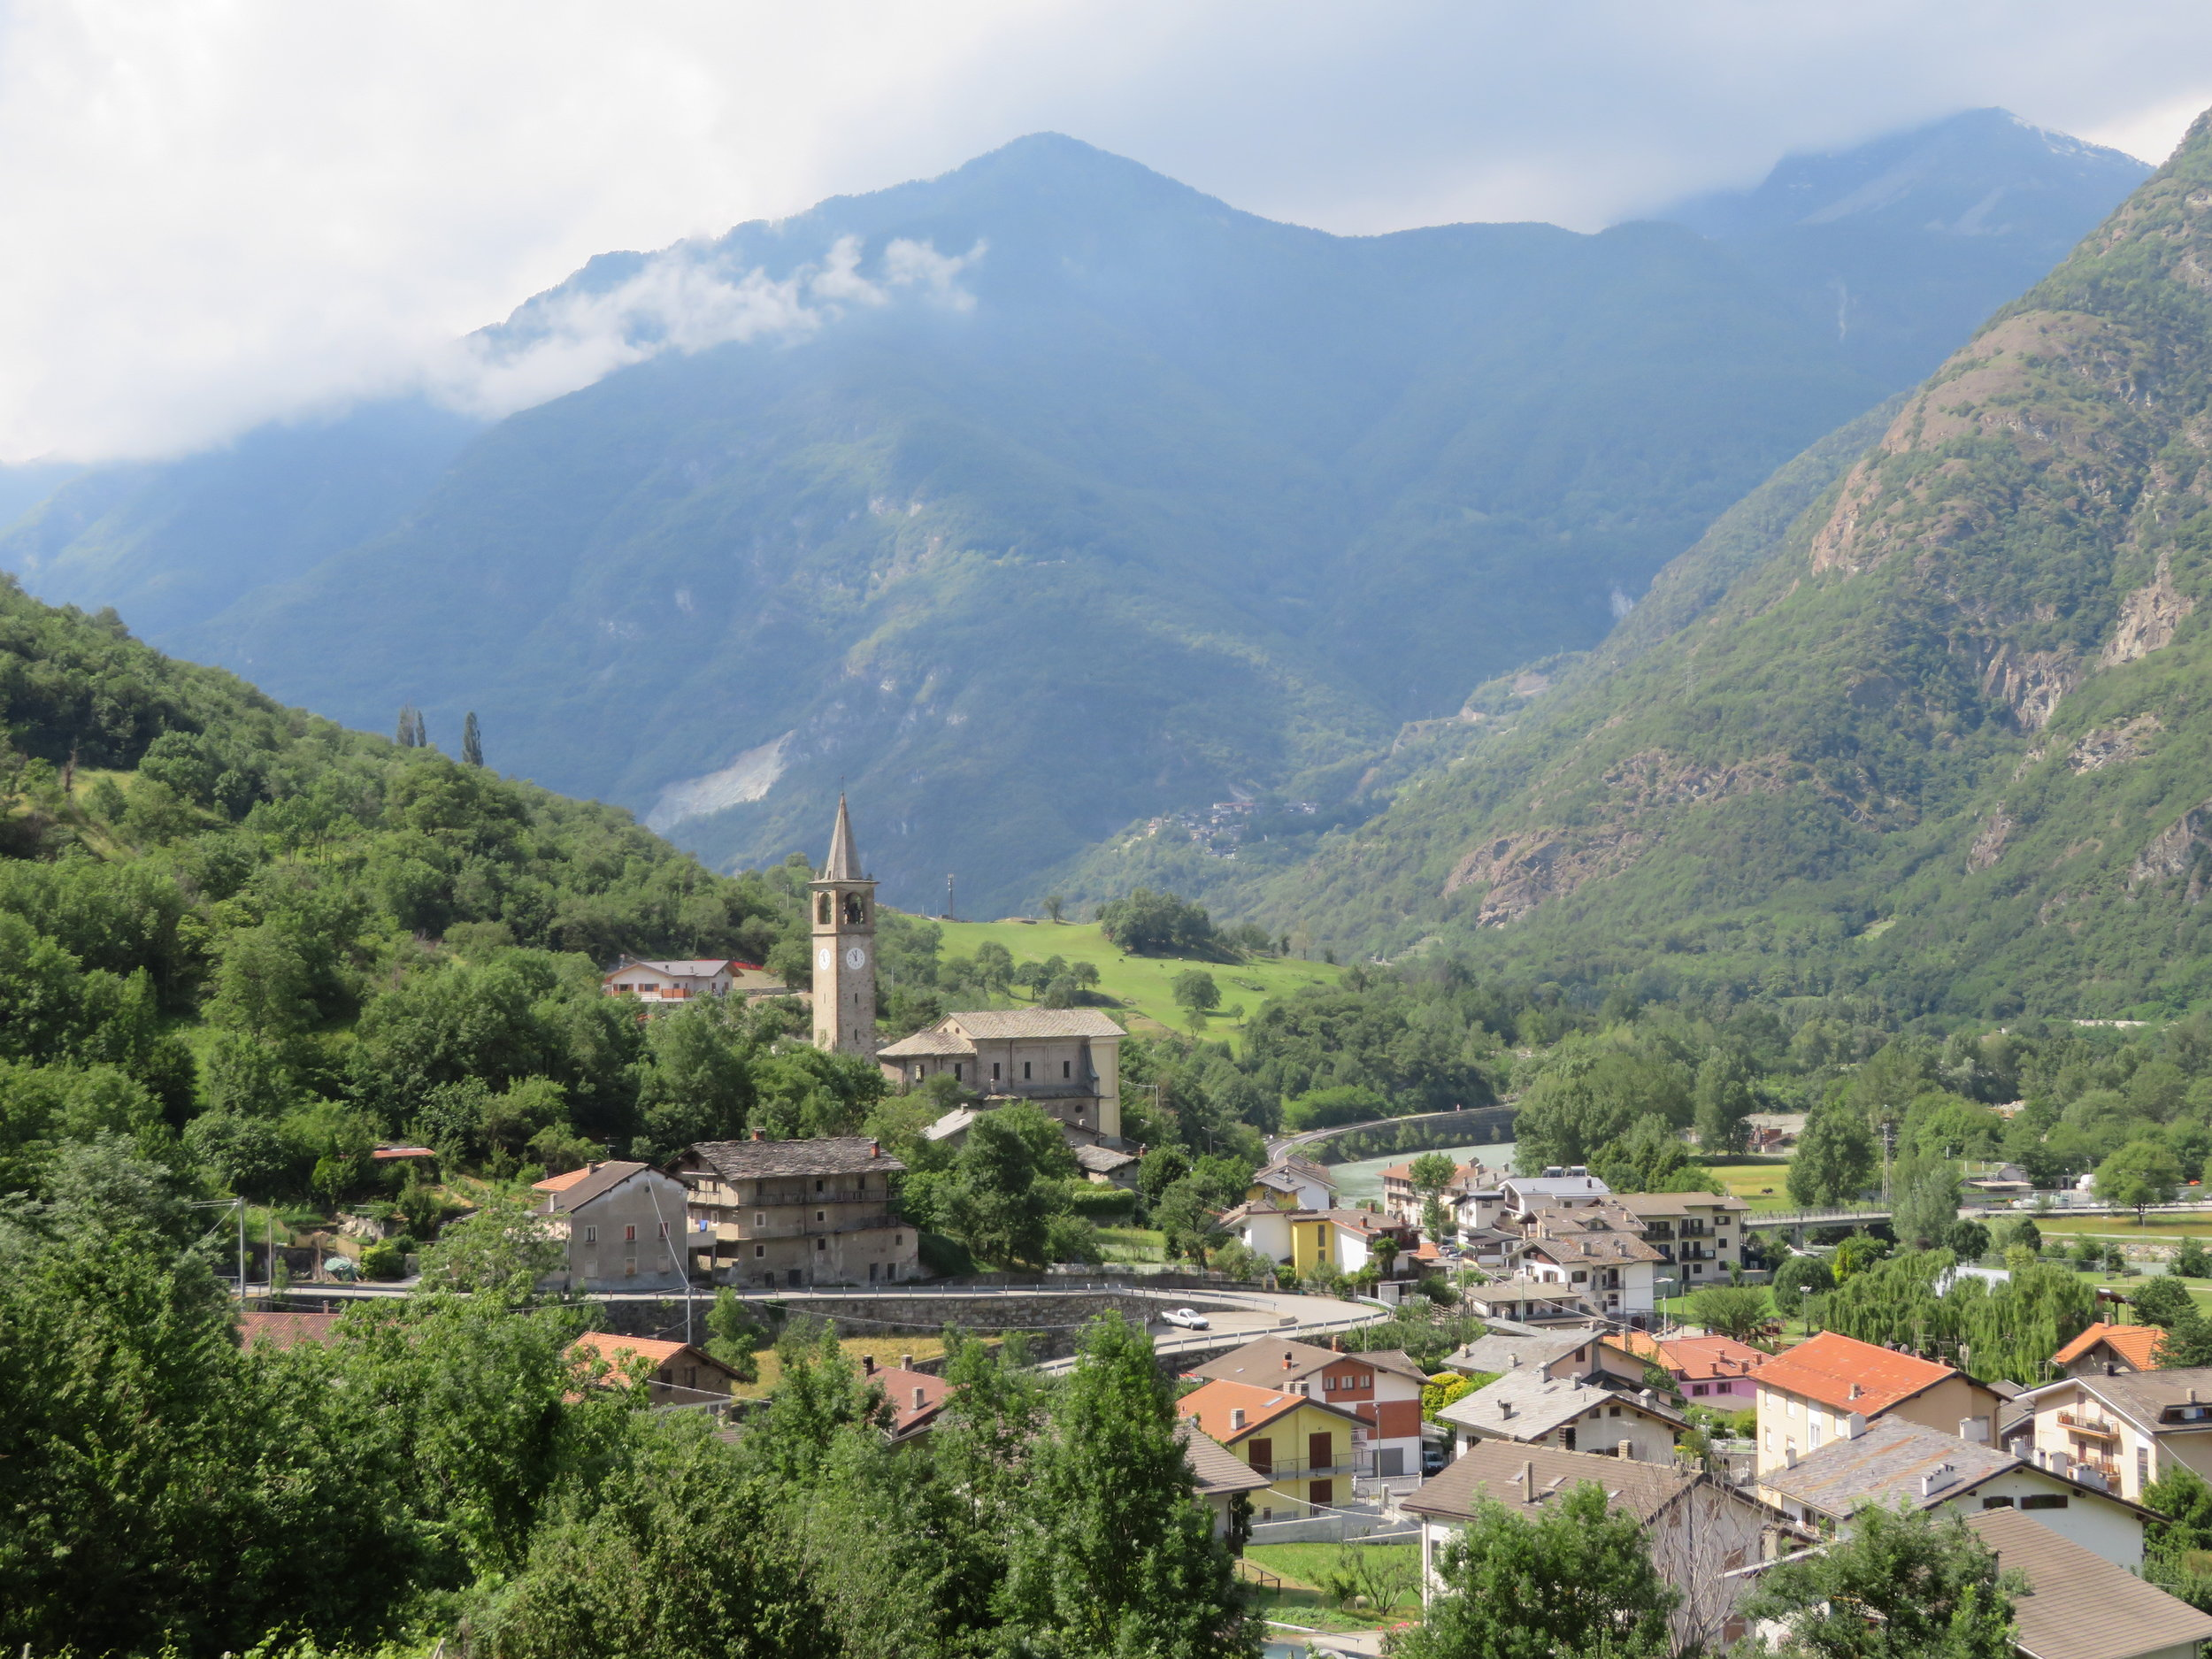 We climbed steep paths for great views of the villages below